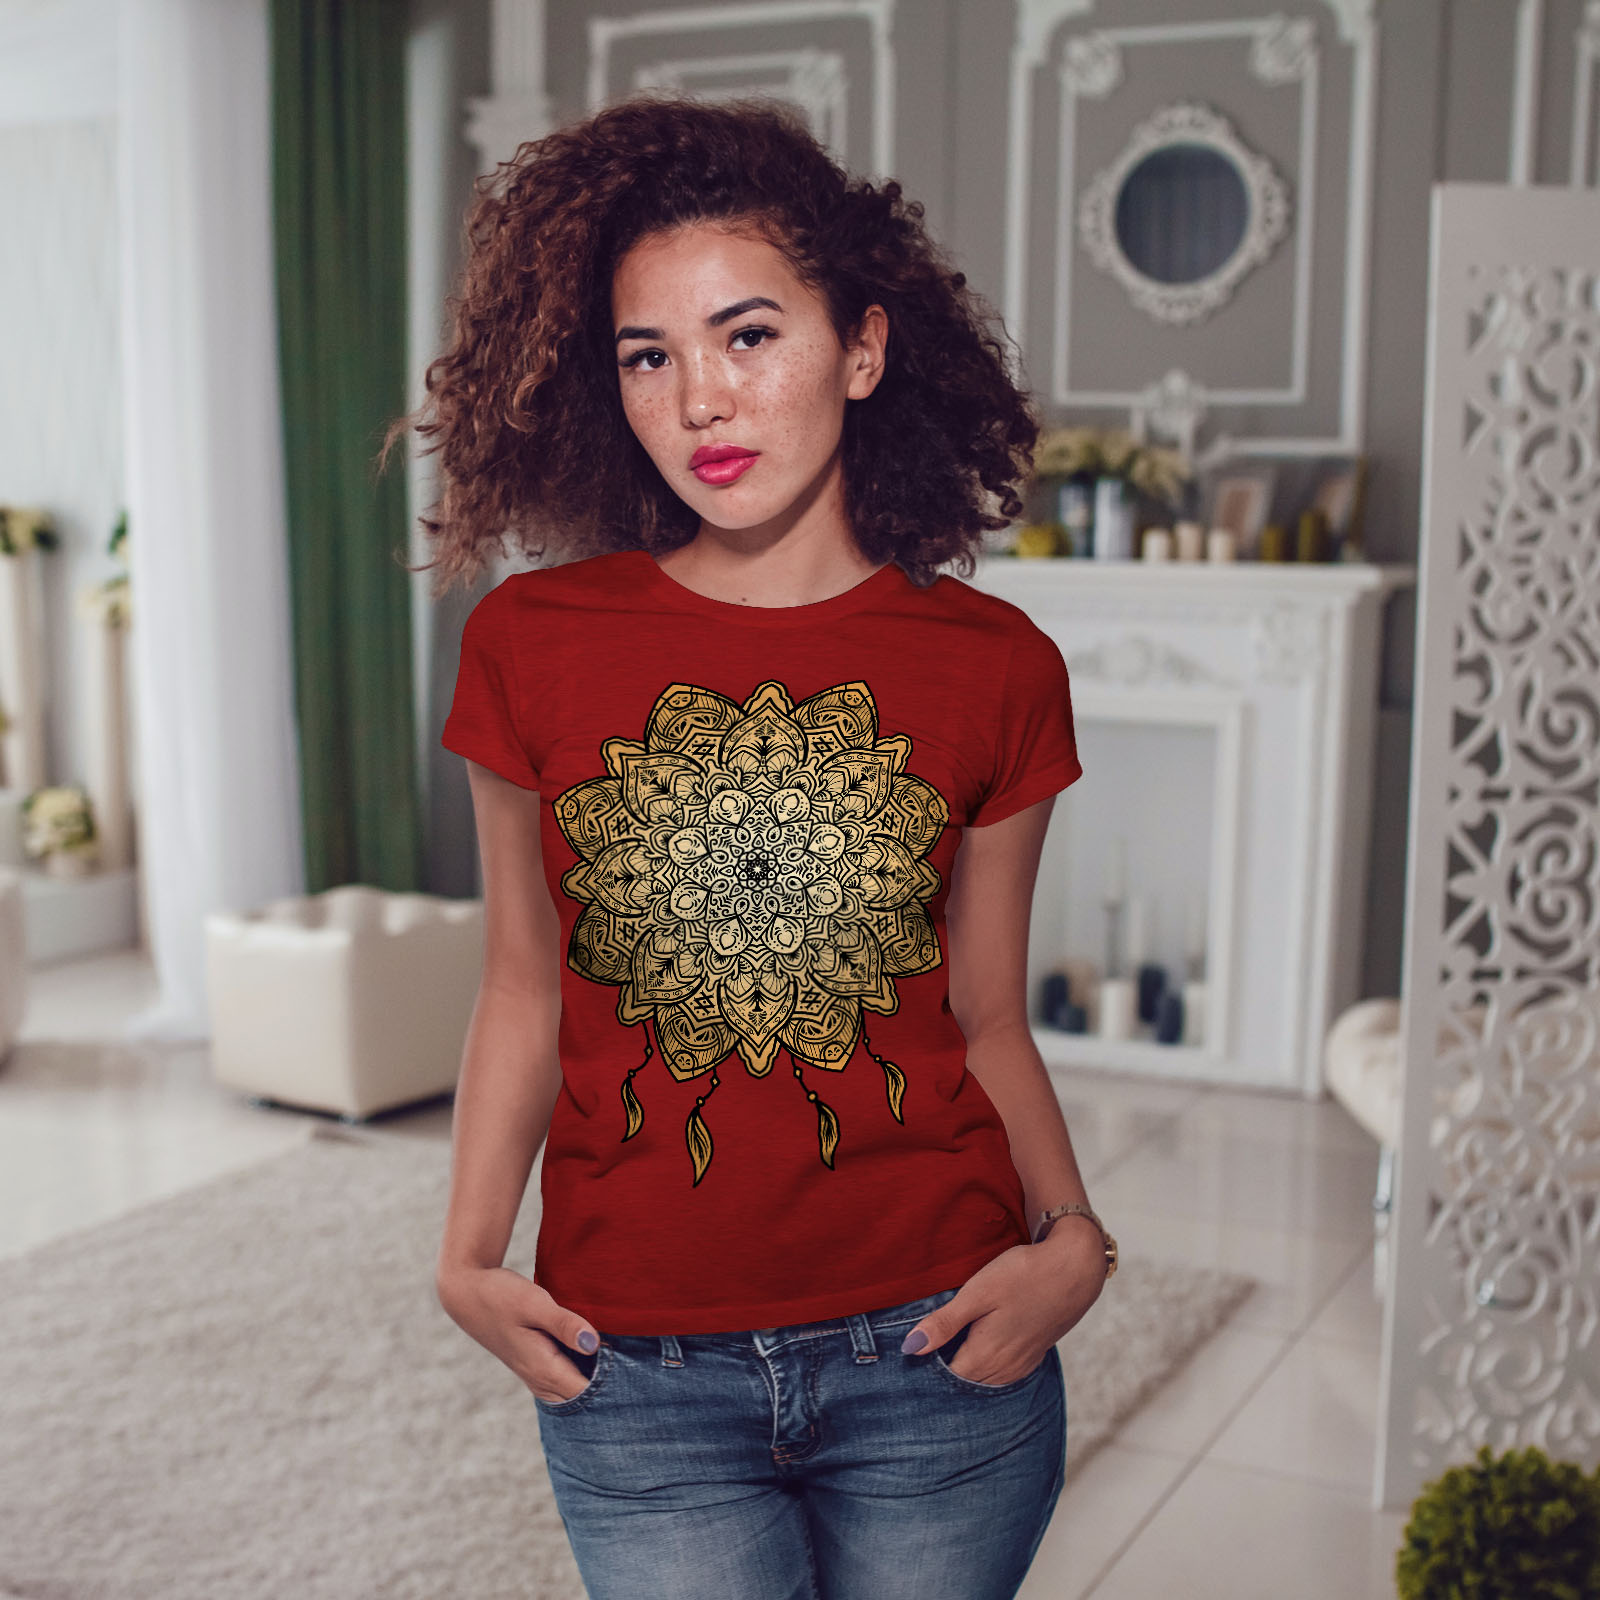 Wellcoda-Mandala-Yoga-Womens-T-shirt-Spiritual-Casual-Design-Printed-Tee thumbnail 11